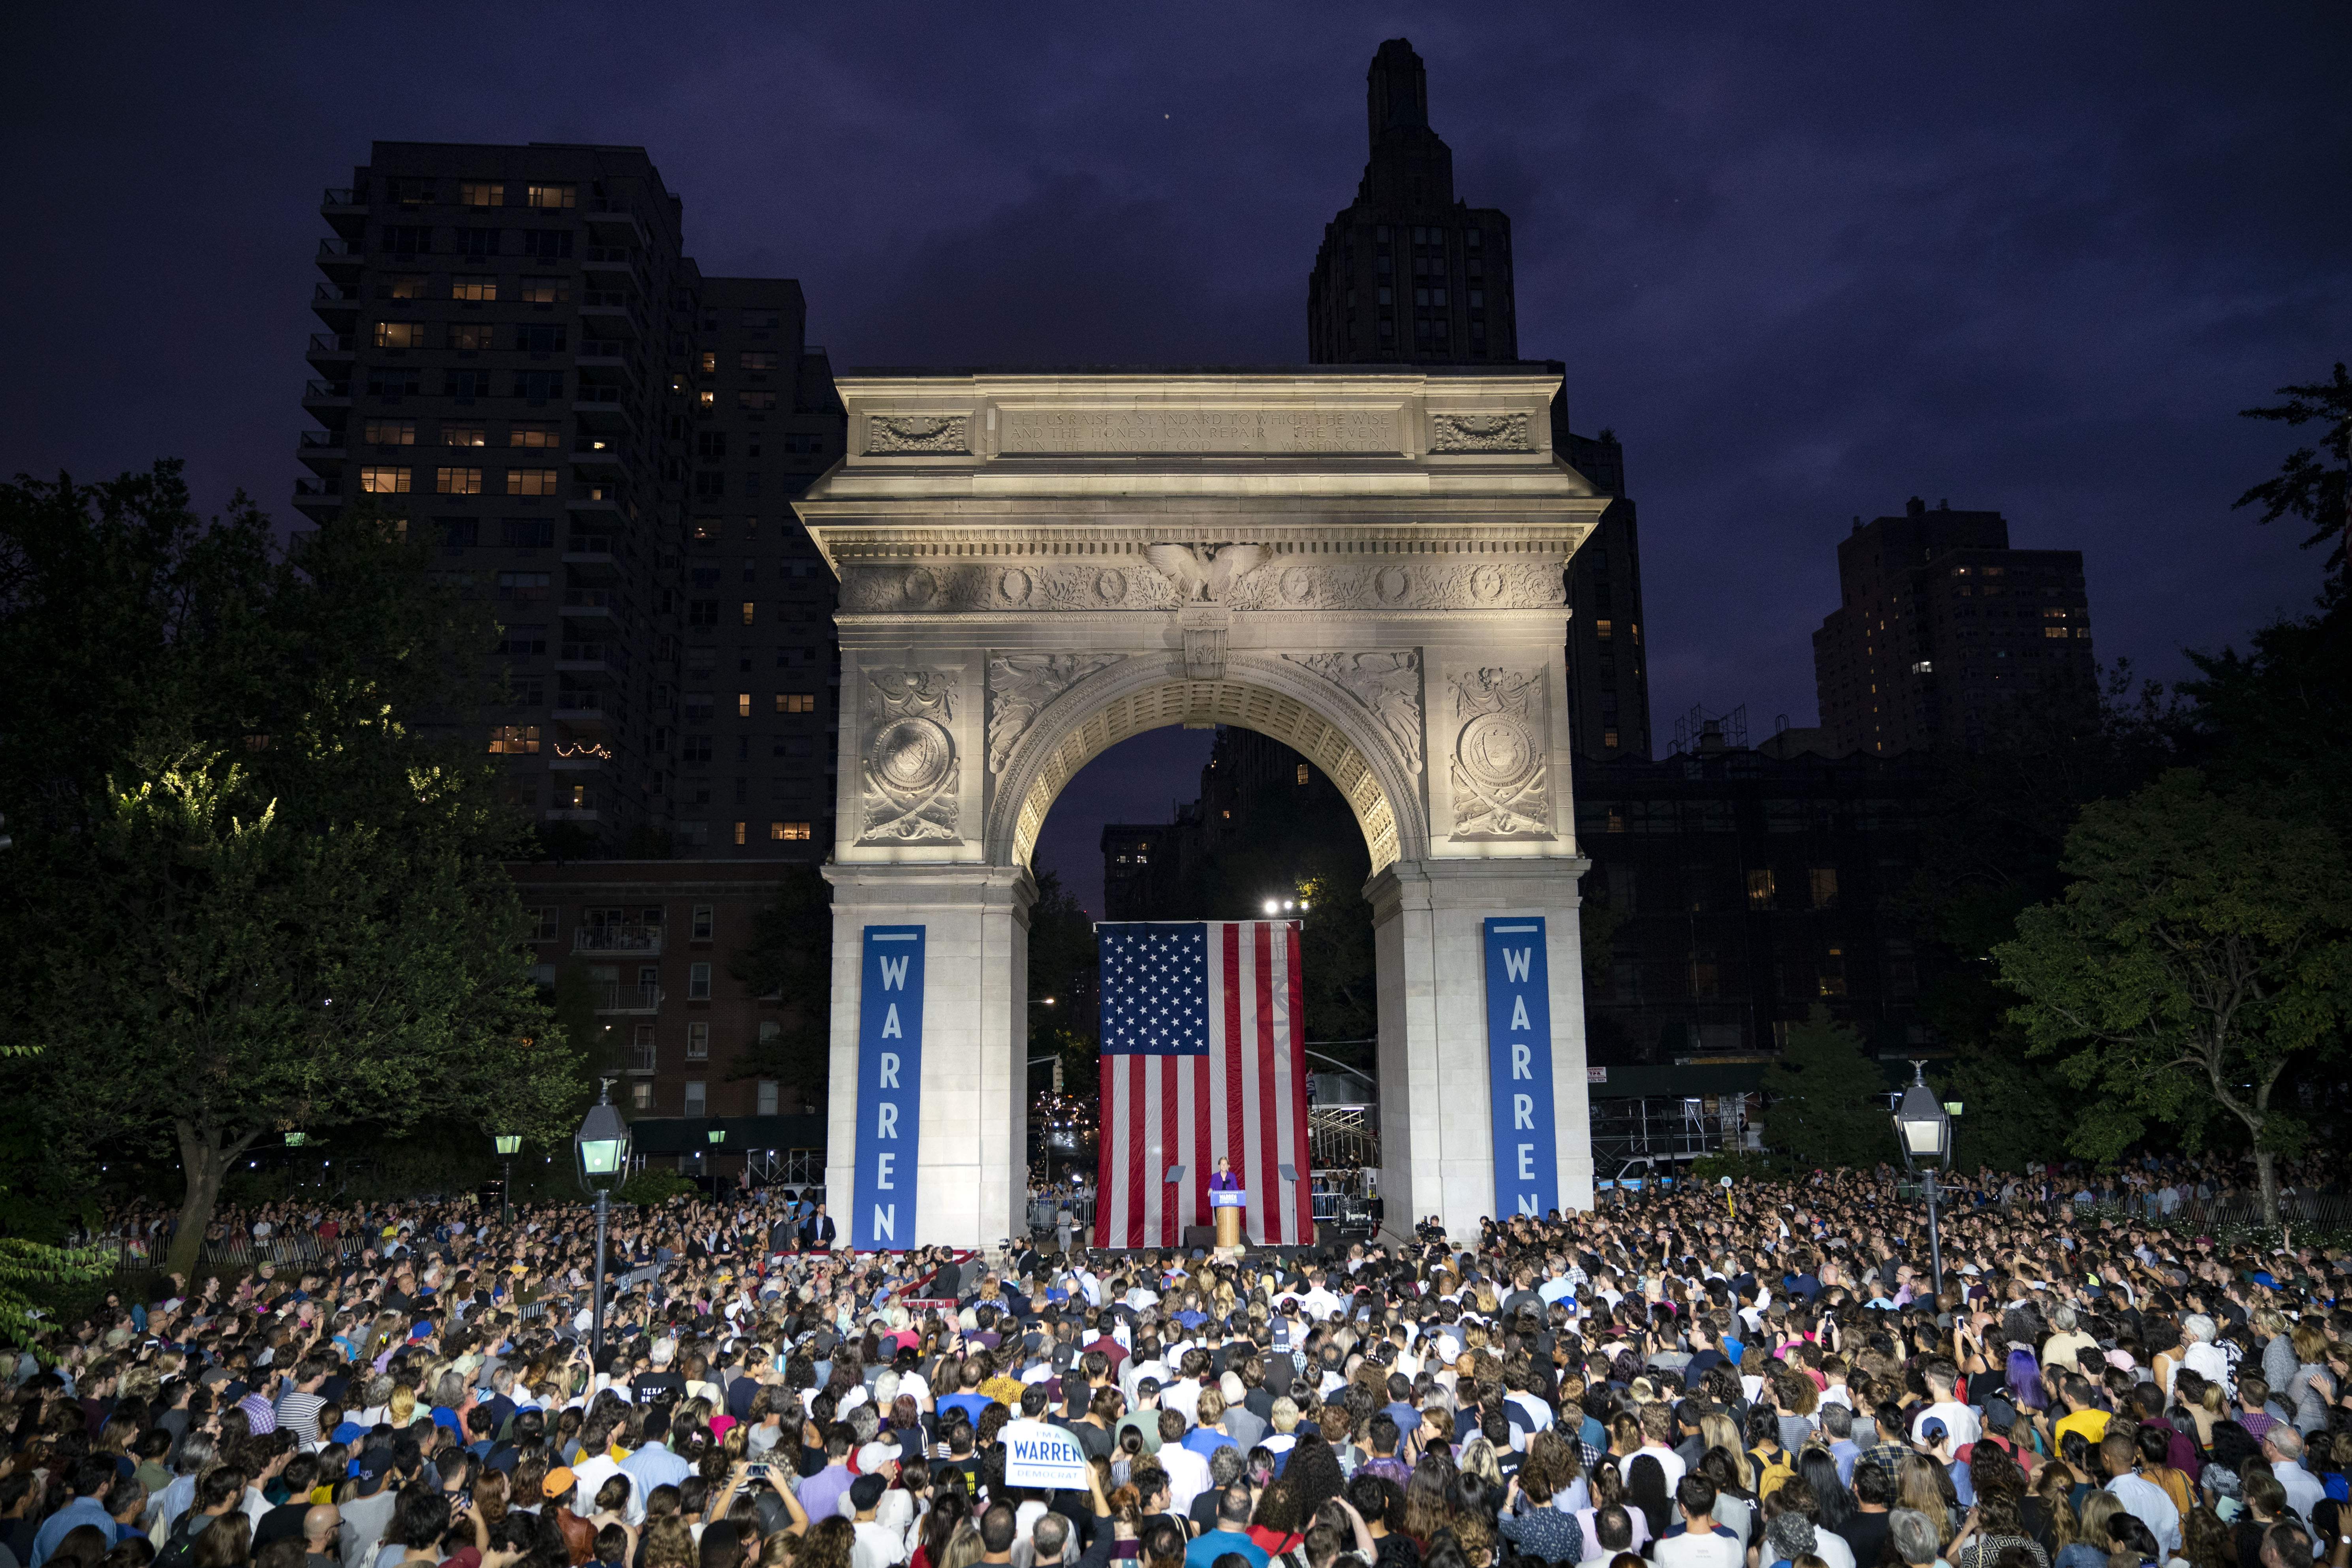 NEW YORK, NY - SEPTEMBER 16: 2020 Democratic presidential candidate Sen. Elizabeth Warren (D-MA) speaks during a rally in Washington Square Park on September 16, 2019 in New York City. Warren unveiled a sweeping anti-corruption plan earlier on Monday. (Photo by Drew Angerer/Getty Images)